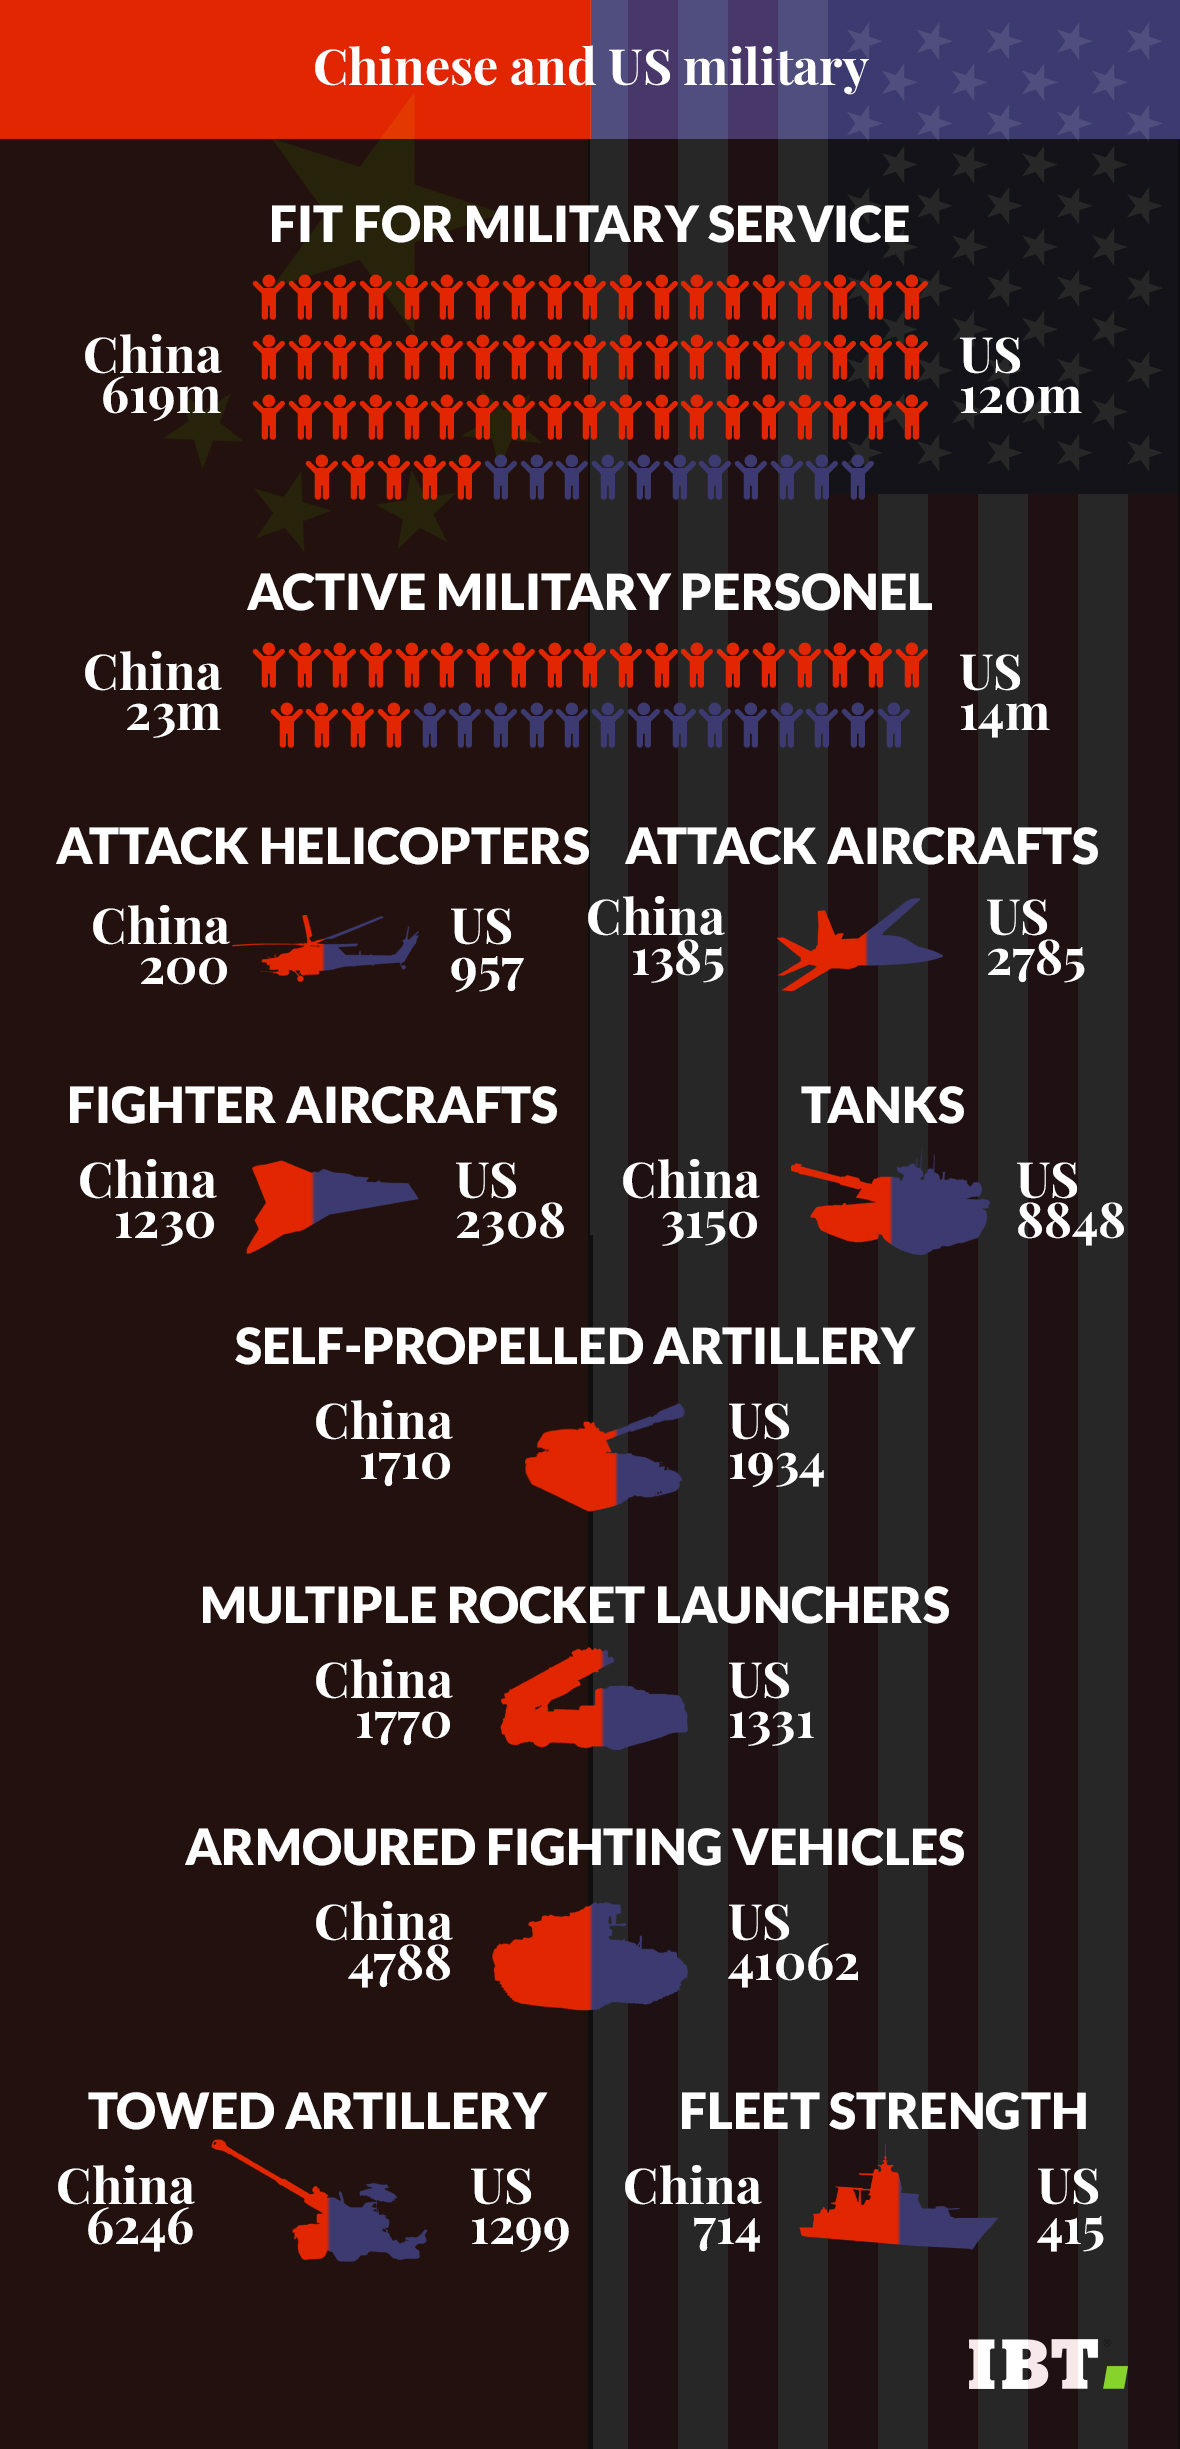 China and US military